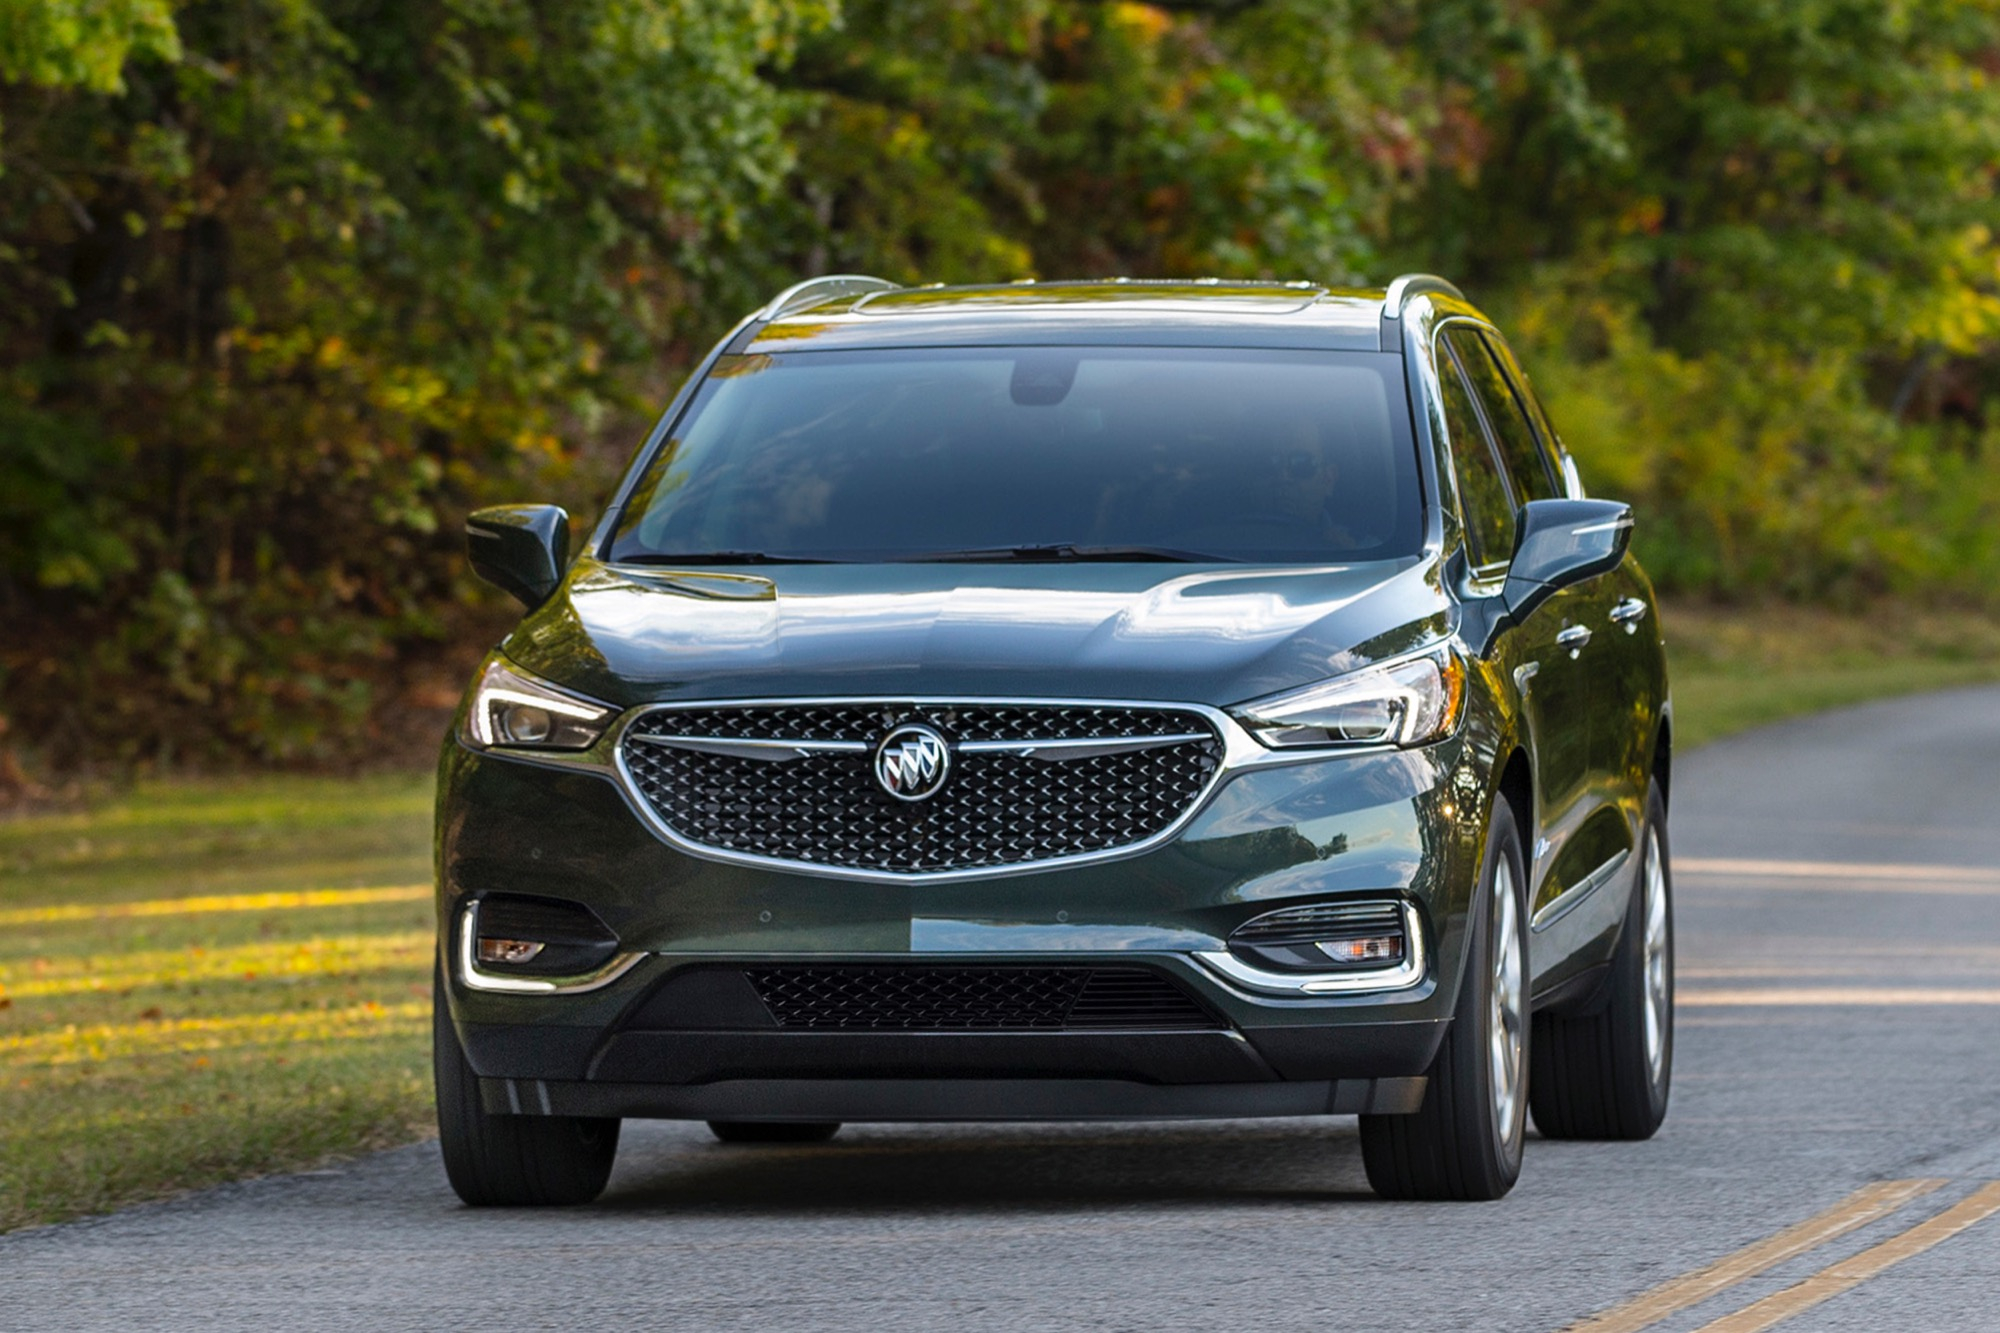 Buyers Don't Care That The Buick Enclave Doesn't Have The 2022 Buick Enclave New Colors, Oil Type, Options